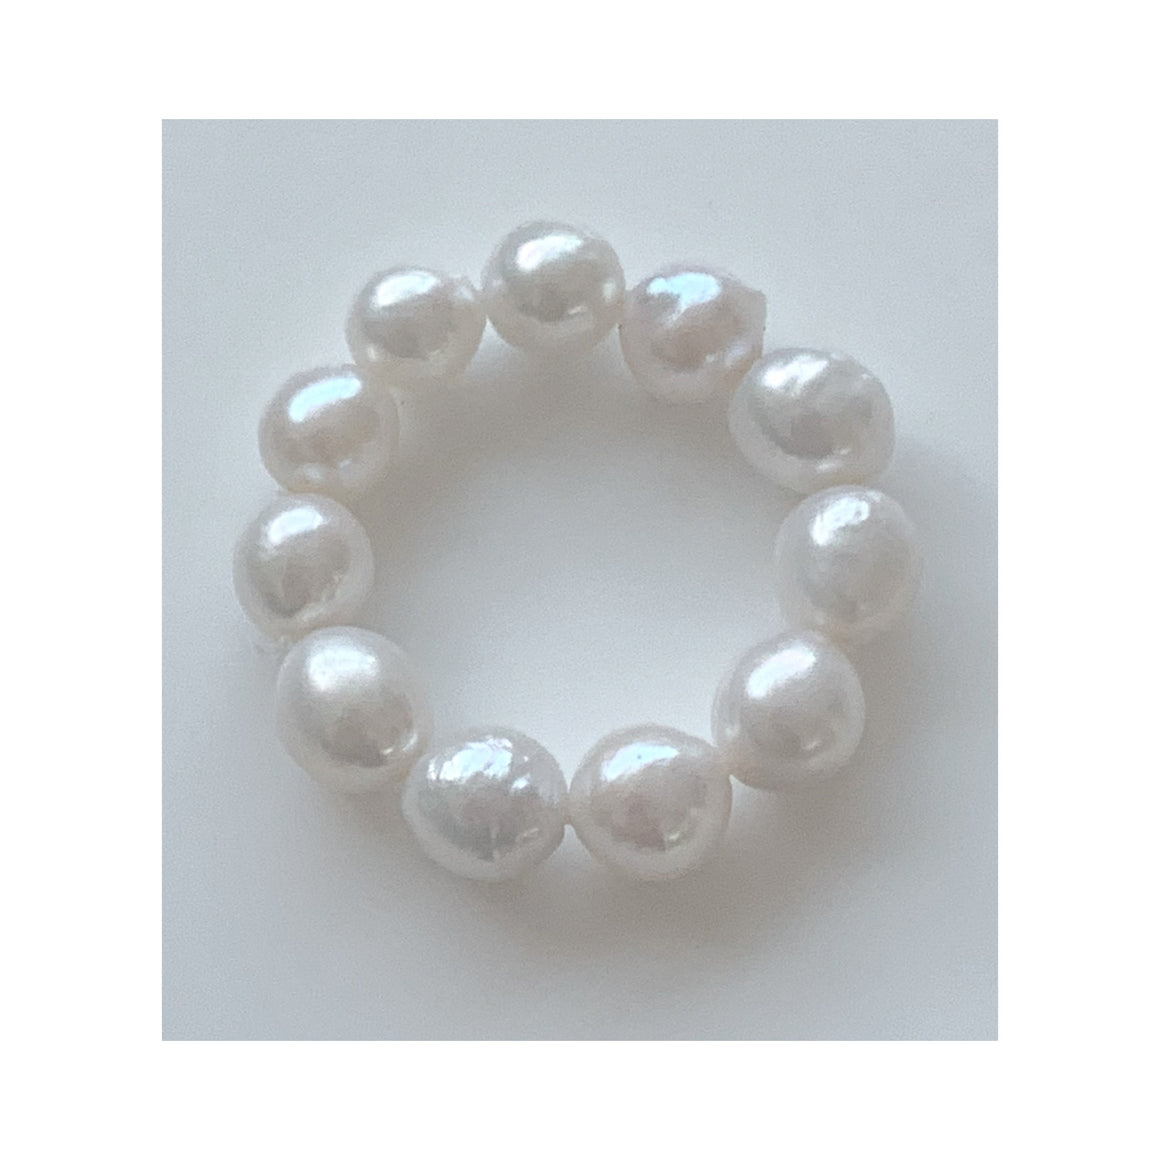 Antibes White Baroque Freshwater Pearl Stretch Ring Set